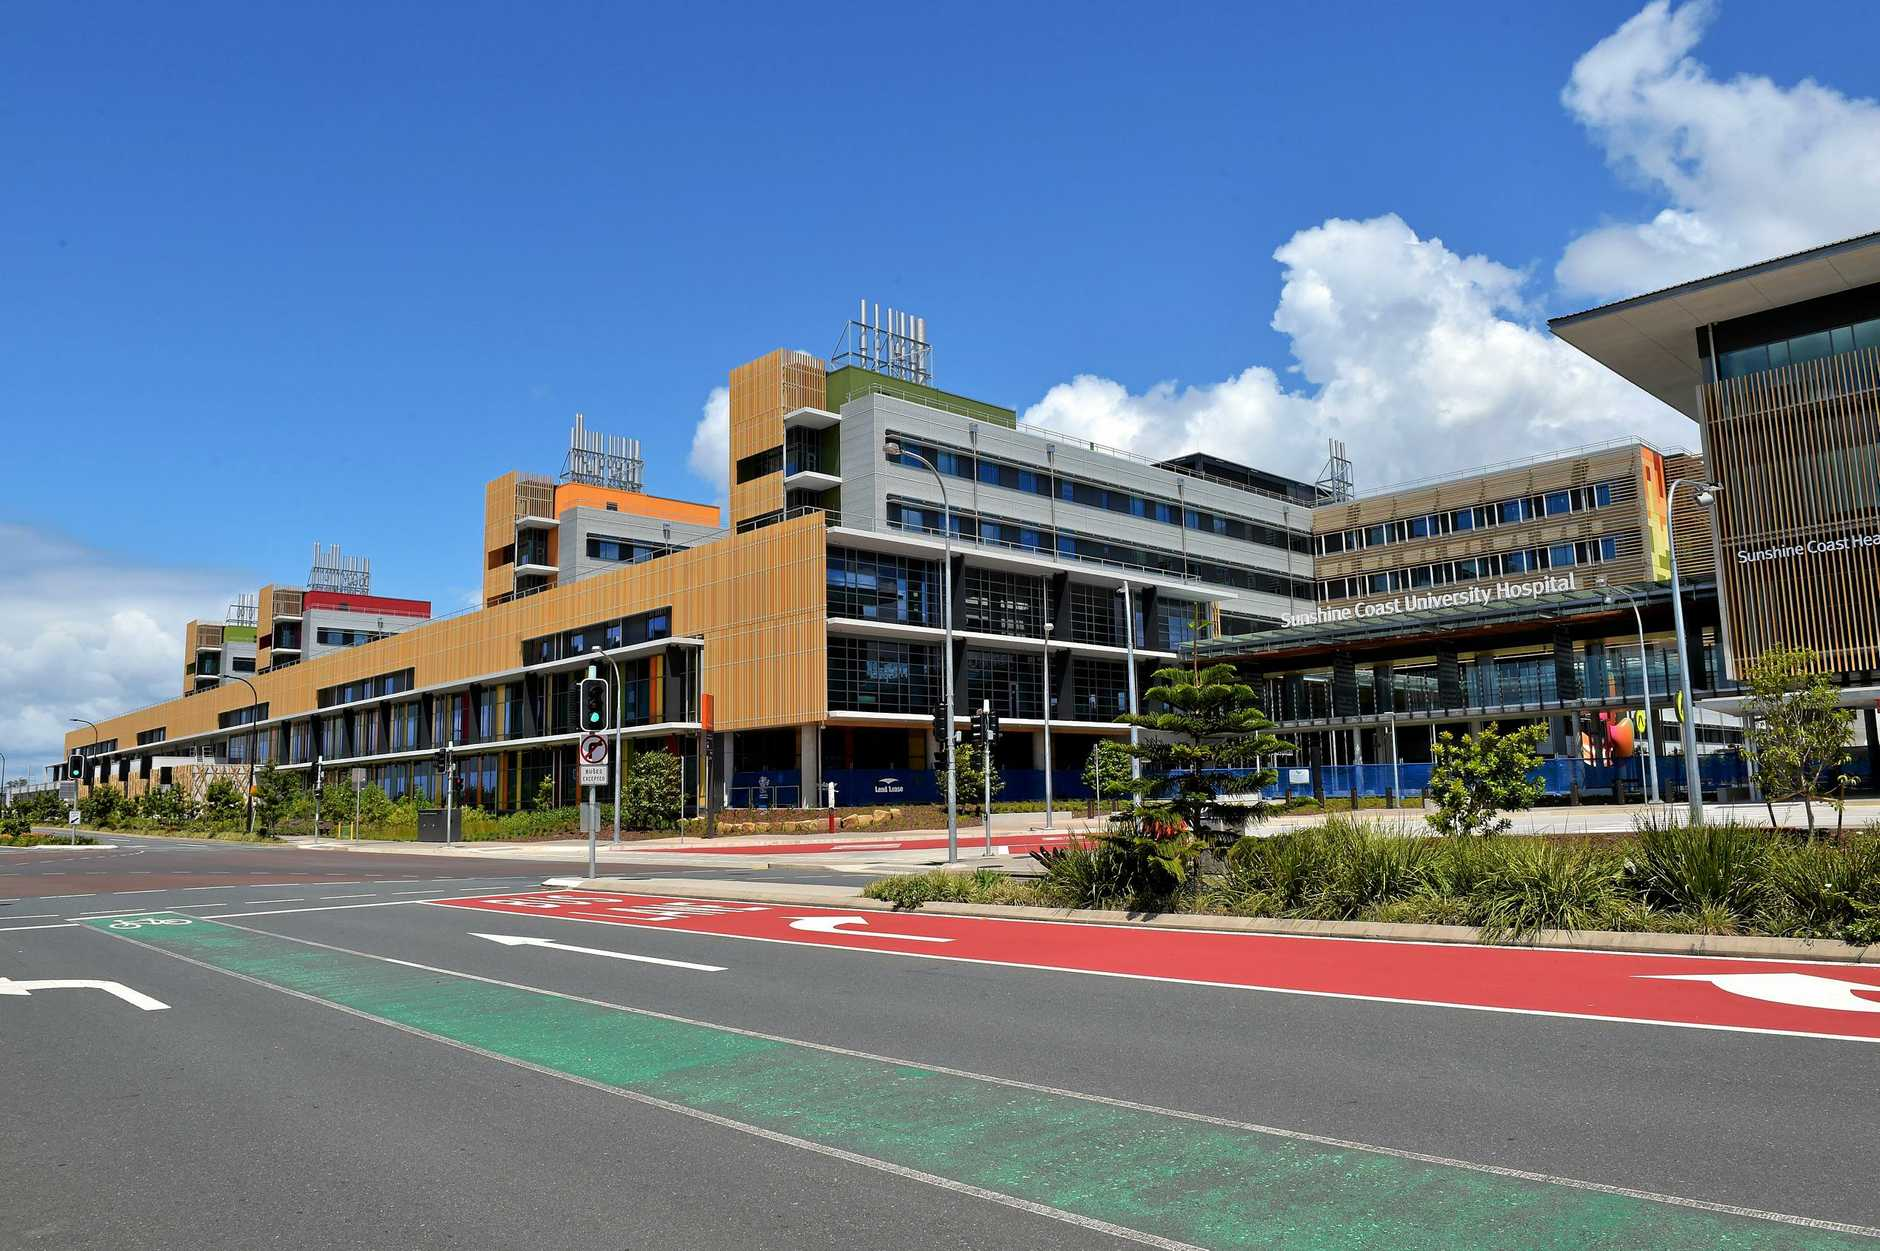 Health Minister Steven Miles has declared the Sunshine Coast University Hospital was on track for completion in 2021 despite only $2.74 million being allocated in the 2019-20 state budget.